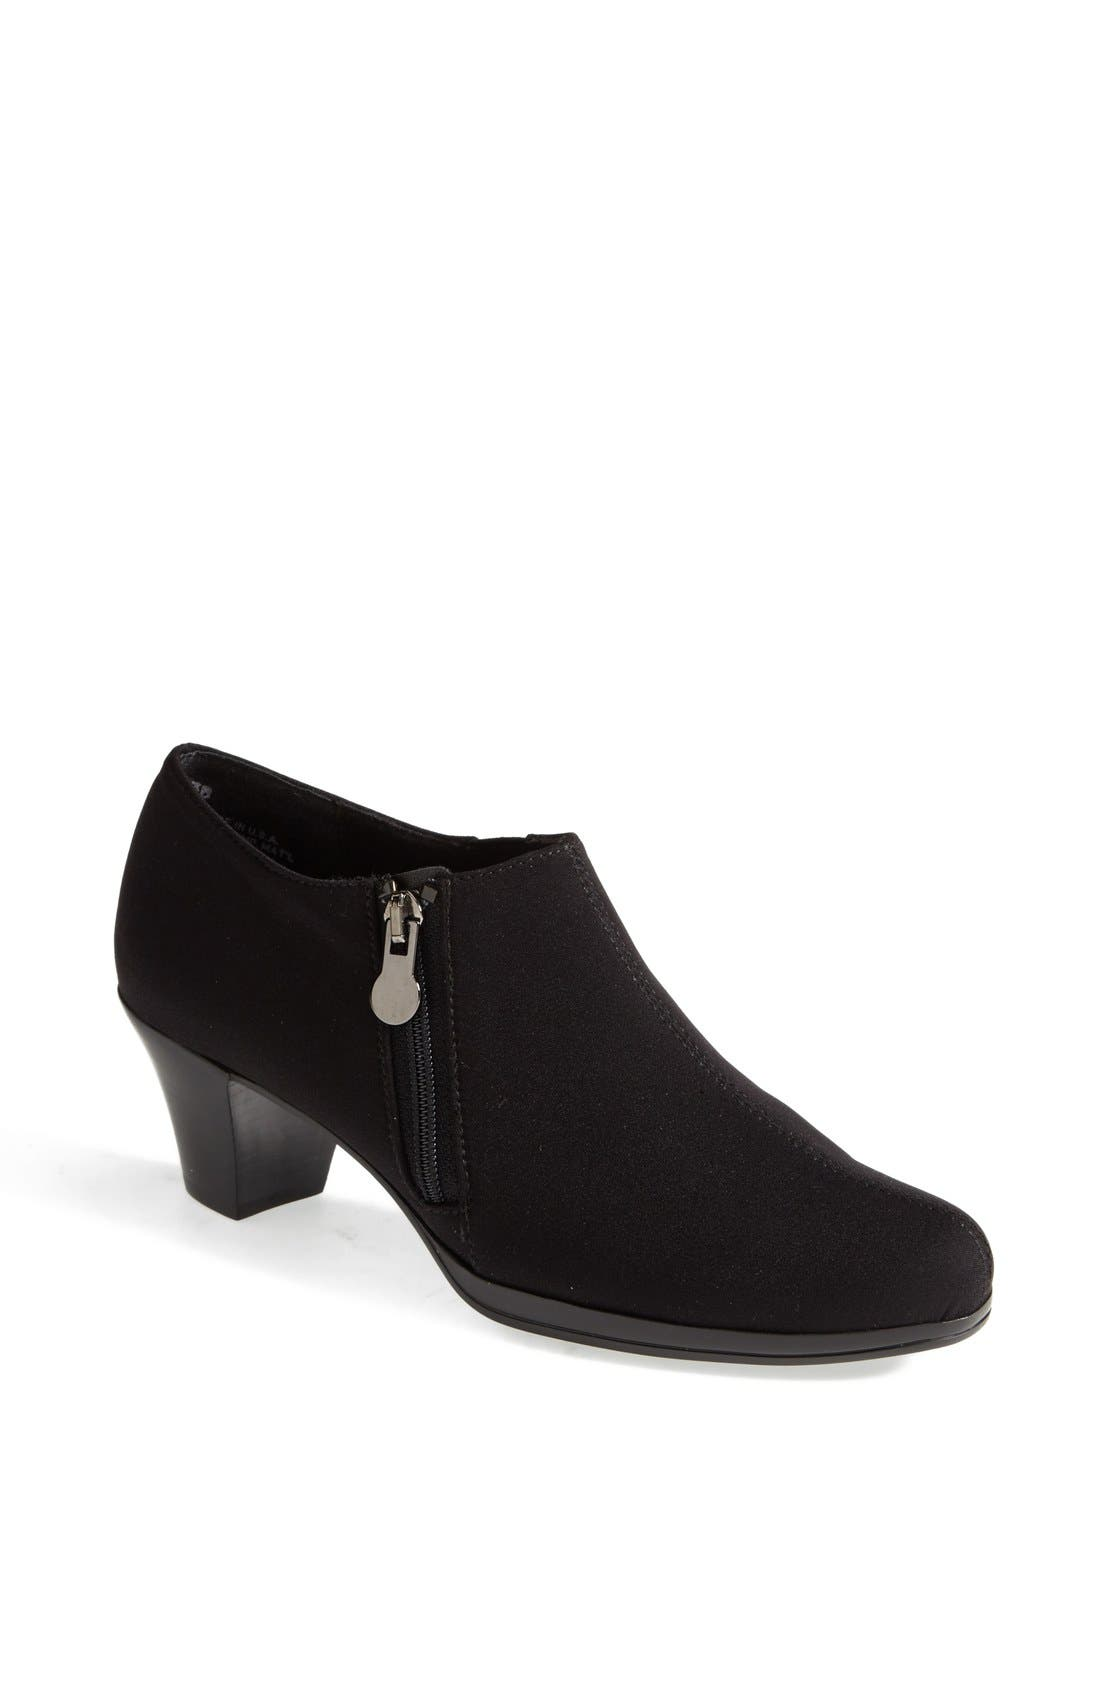 MUNRO Taylor Bootie